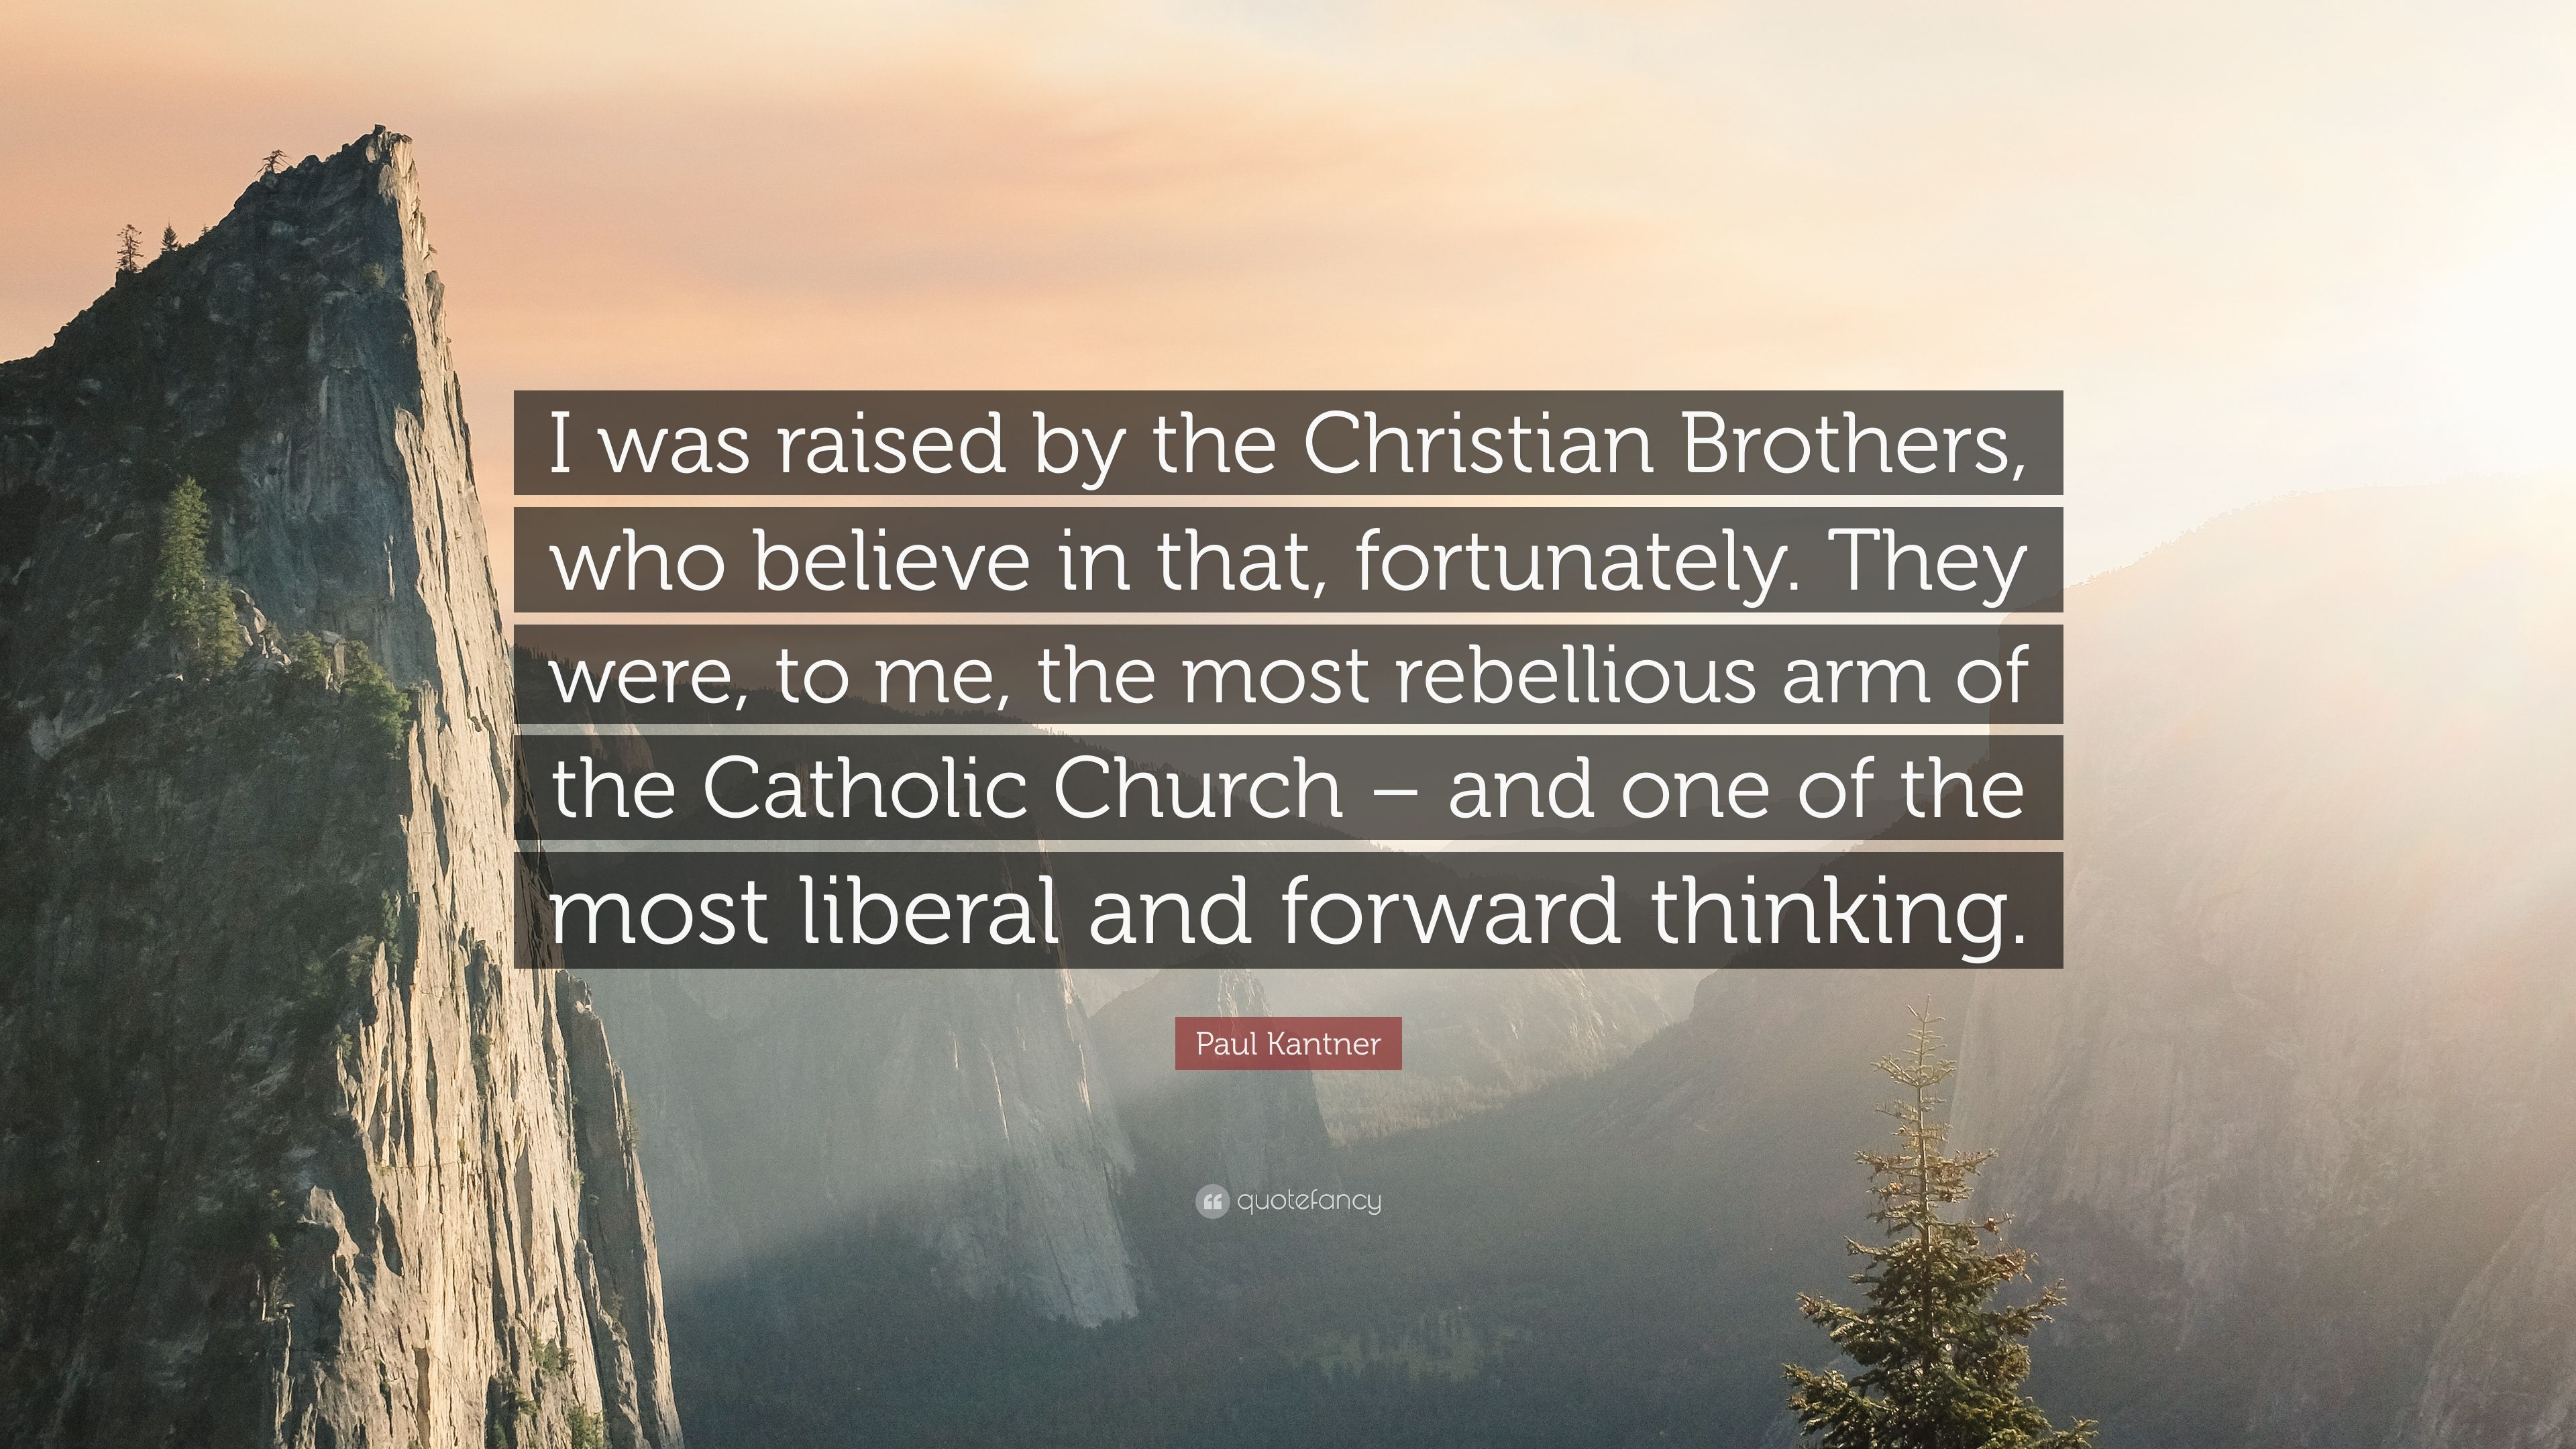 Christian Brothers Near Me >> Paul Kantner Quote I Was Raised By The Christian Brothers Who